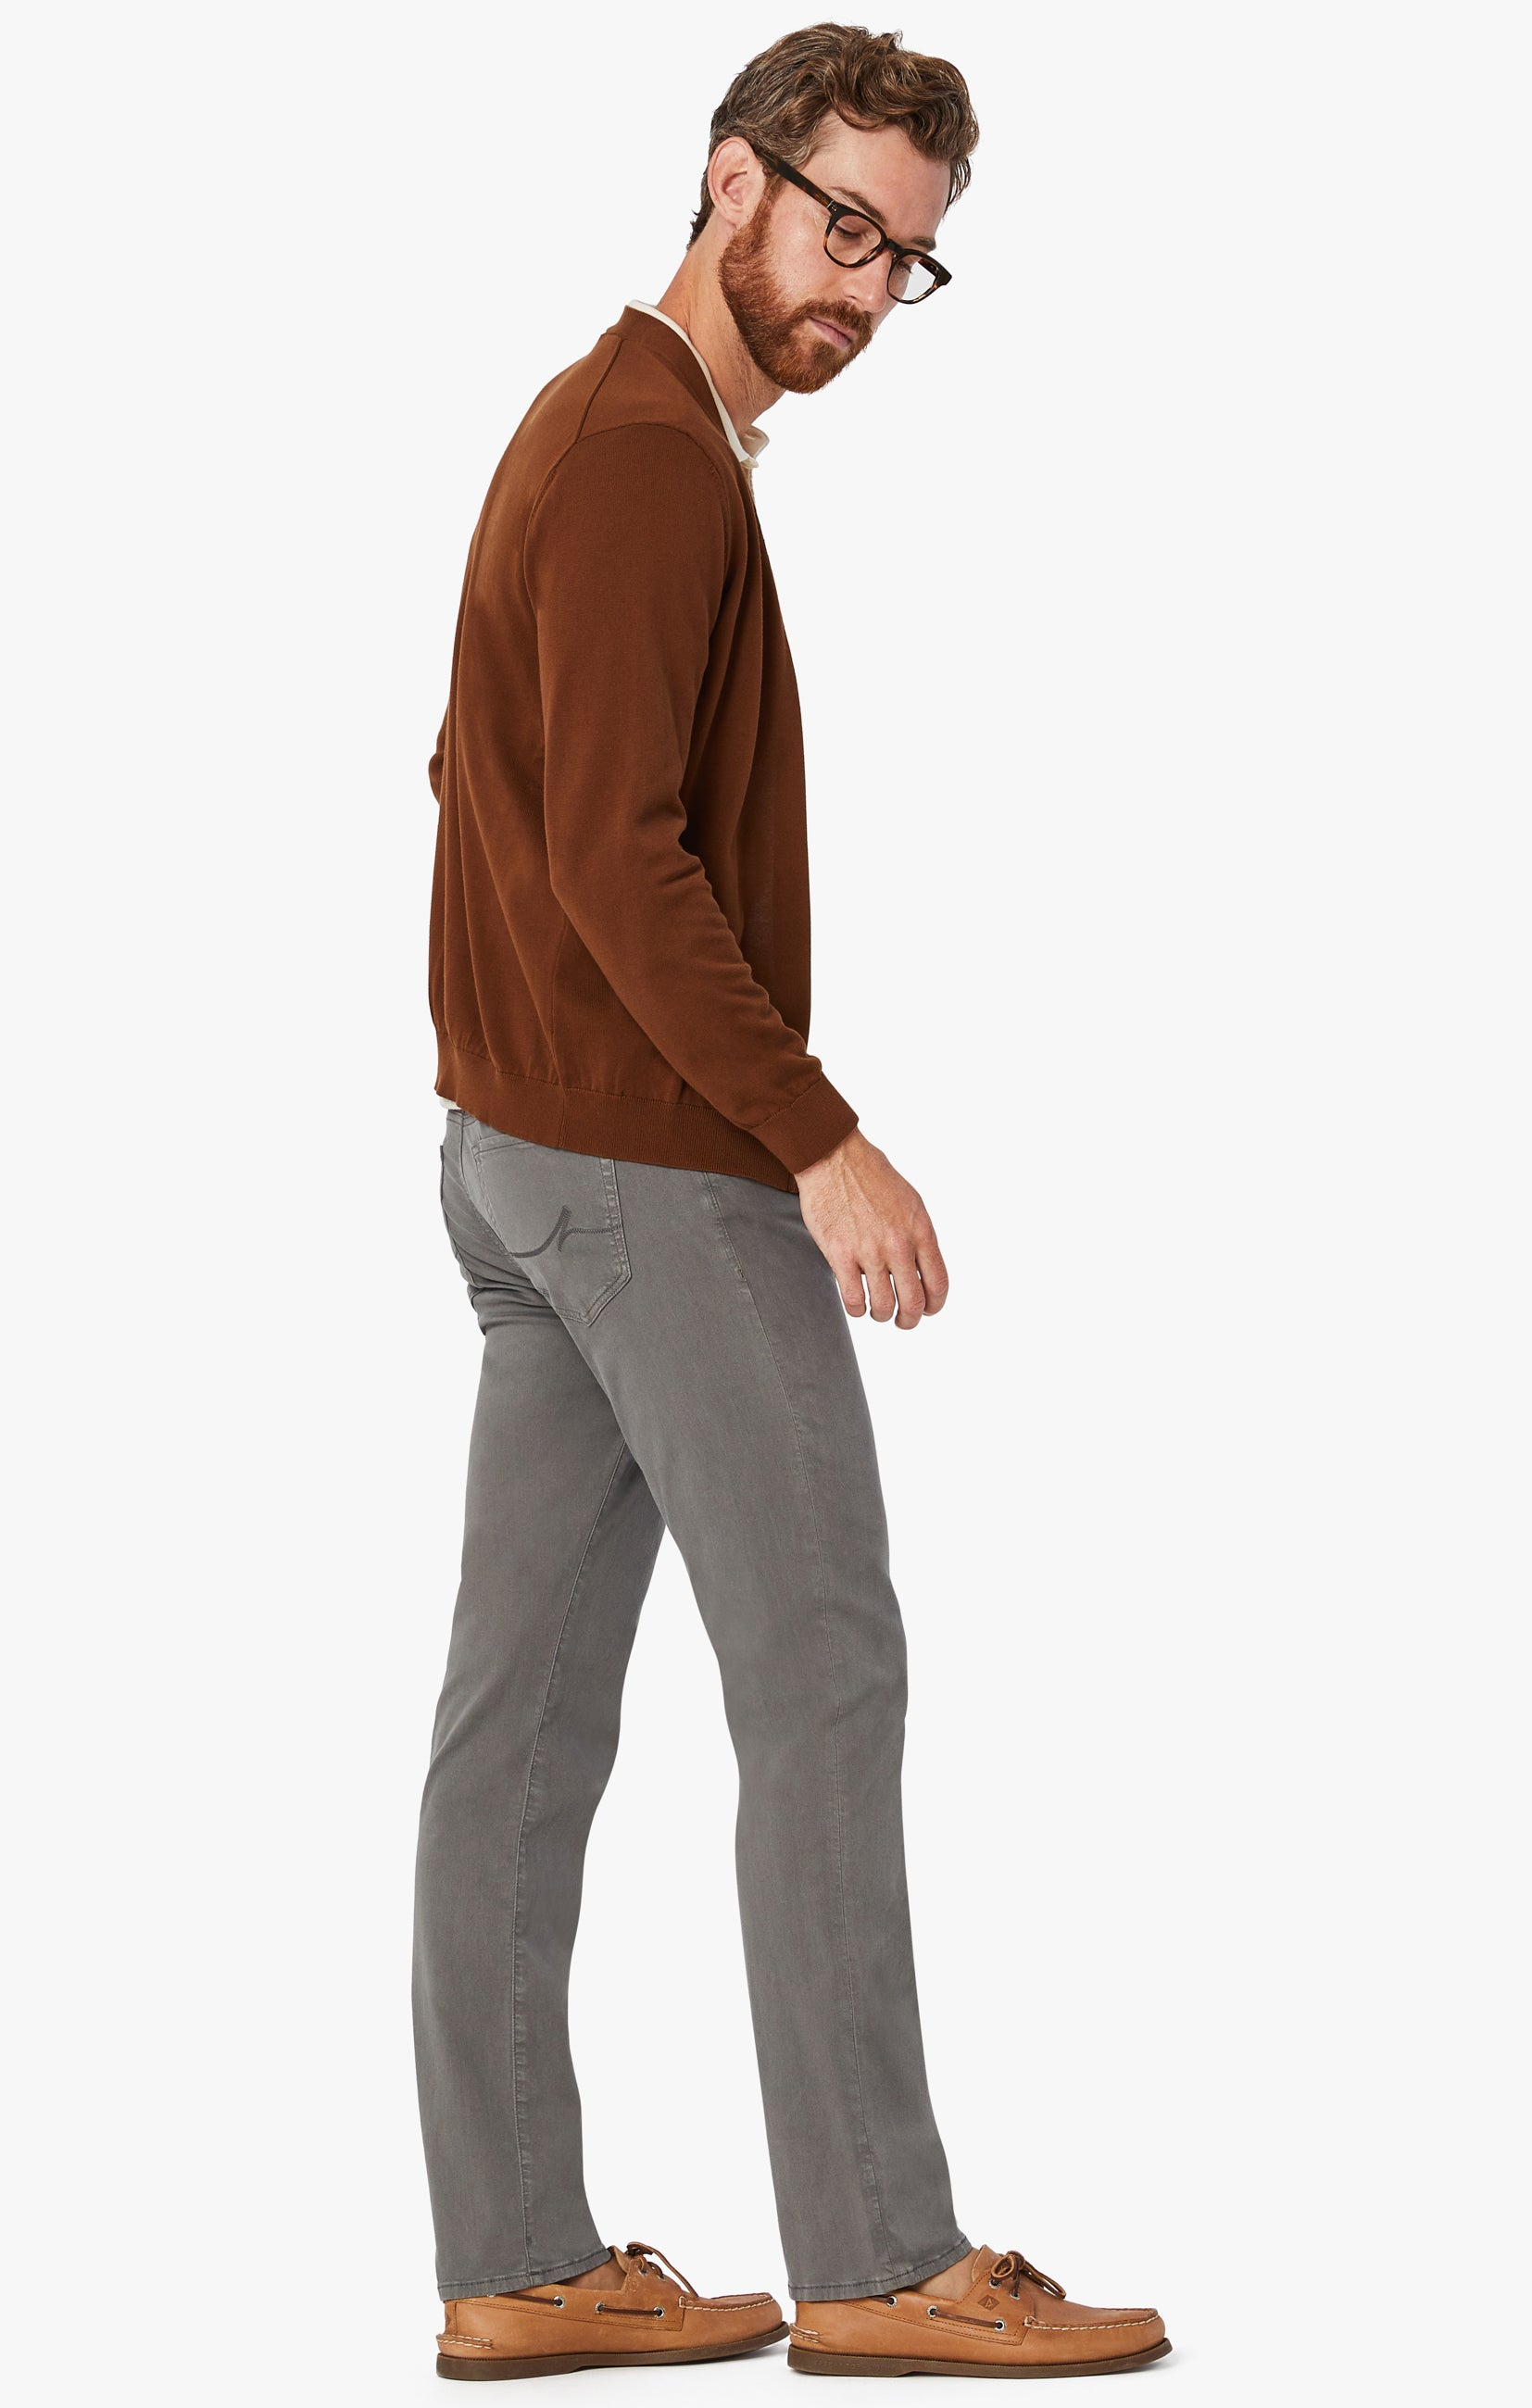 Charisma Relaxed Straight Pants in Dark Stone Twill Image 9